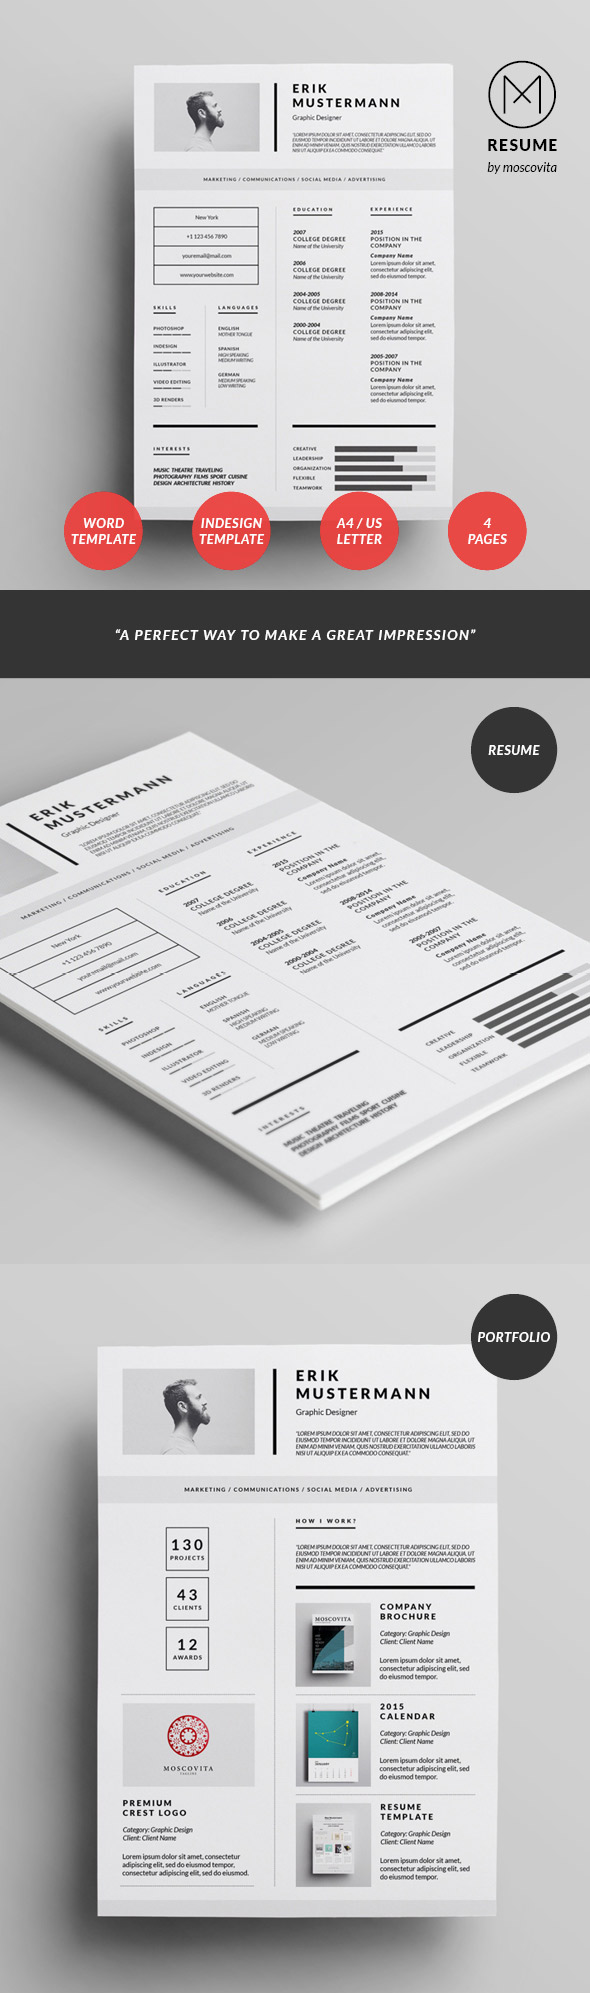 creative resume templates  to land a new job in stylecreative modern resume design